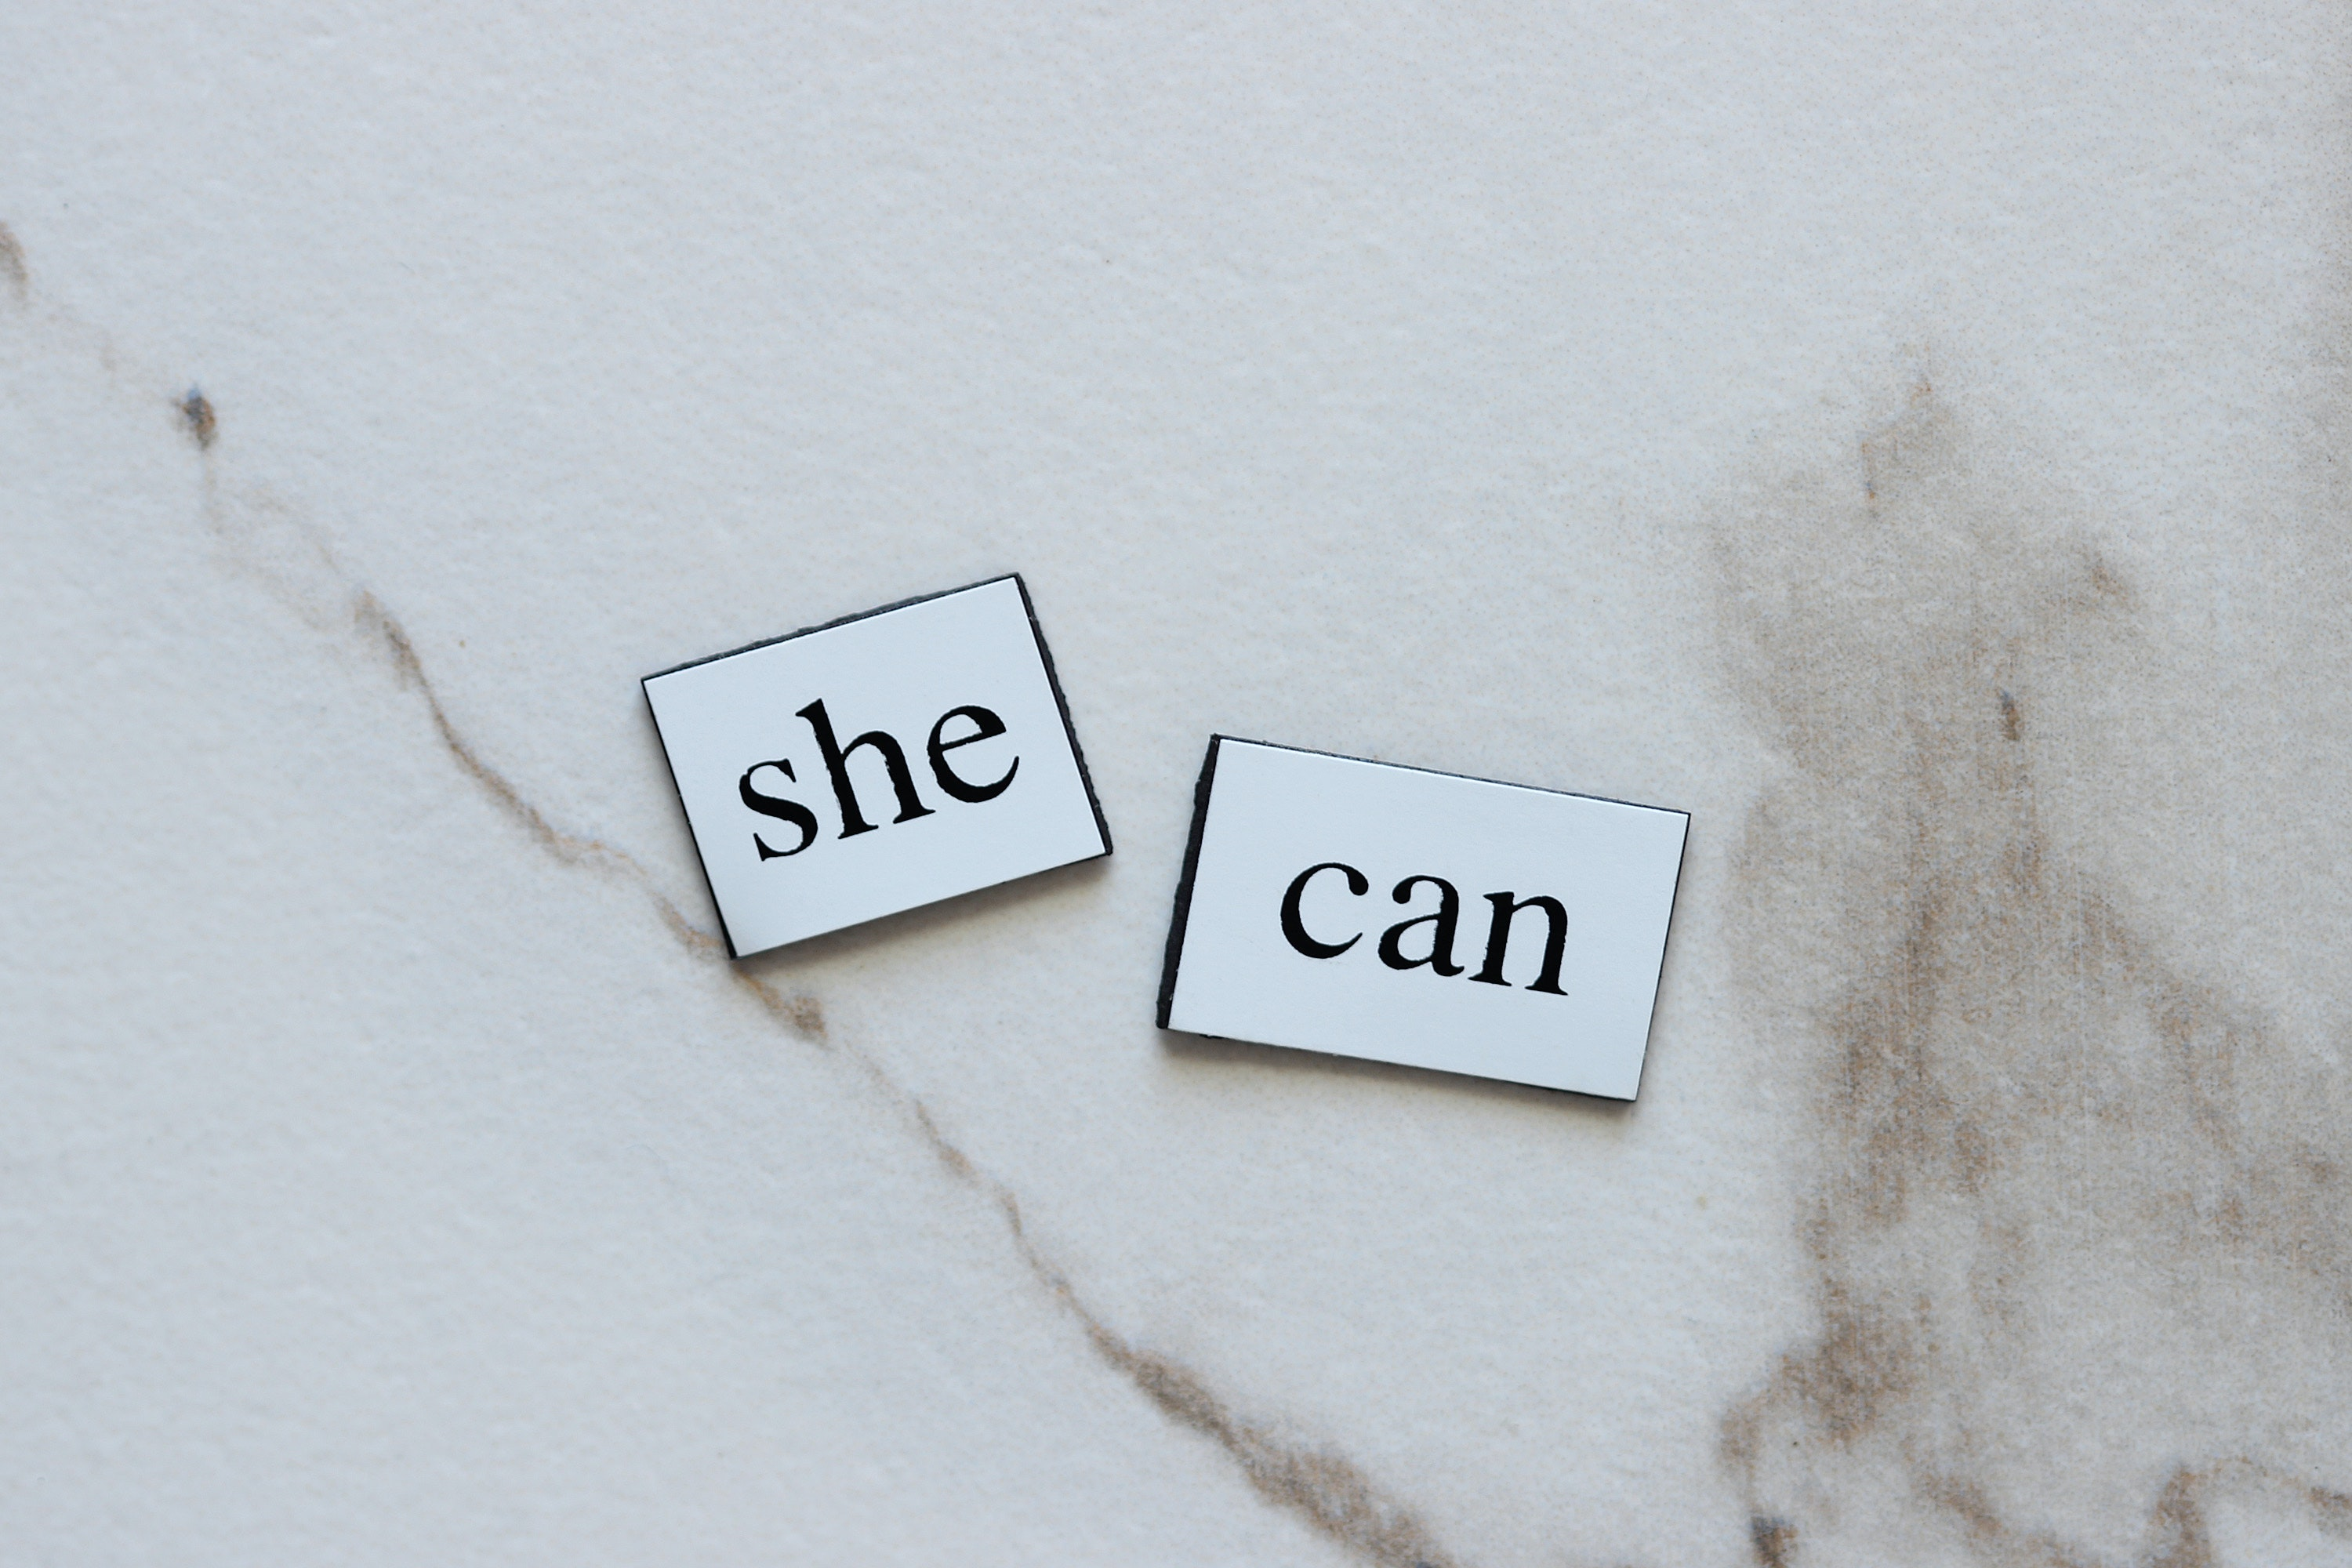 Using 'she' and 'he' reinforces gender roles and discrimination of women